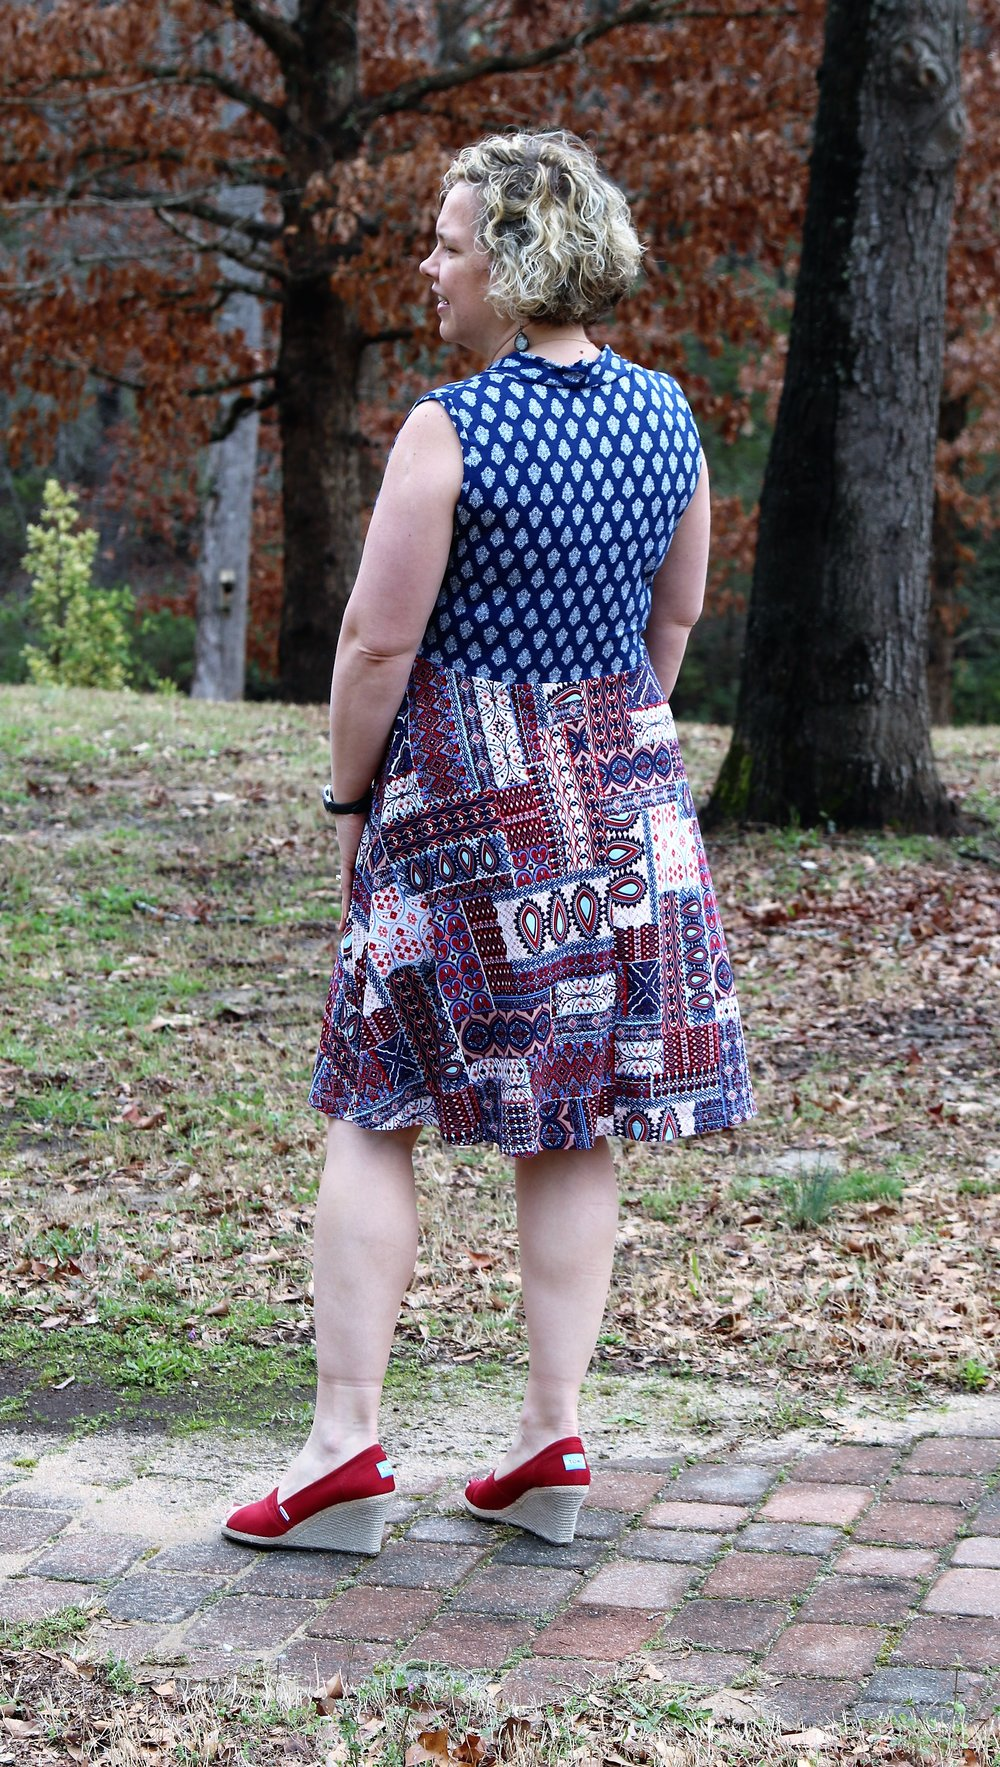 Also exciting...the  Olympia  has built in cup-sizing...so no need to worry about an FBA - all that work has already been done for you!  It has 5 sleeve options and both knee and maxi length options.  This dress is so, so versatile!  It releases today,  and is on sale for $8 through Saturday.   I received this pattern free of charge in return for sewing and giving feedback, but all opinions are my own.  **This is an earlier version of the pattern, so there have been a few minor tweaks.  I also elected to not turn the sleeveless bands to the inside to provide a little extra shoulder coverage.